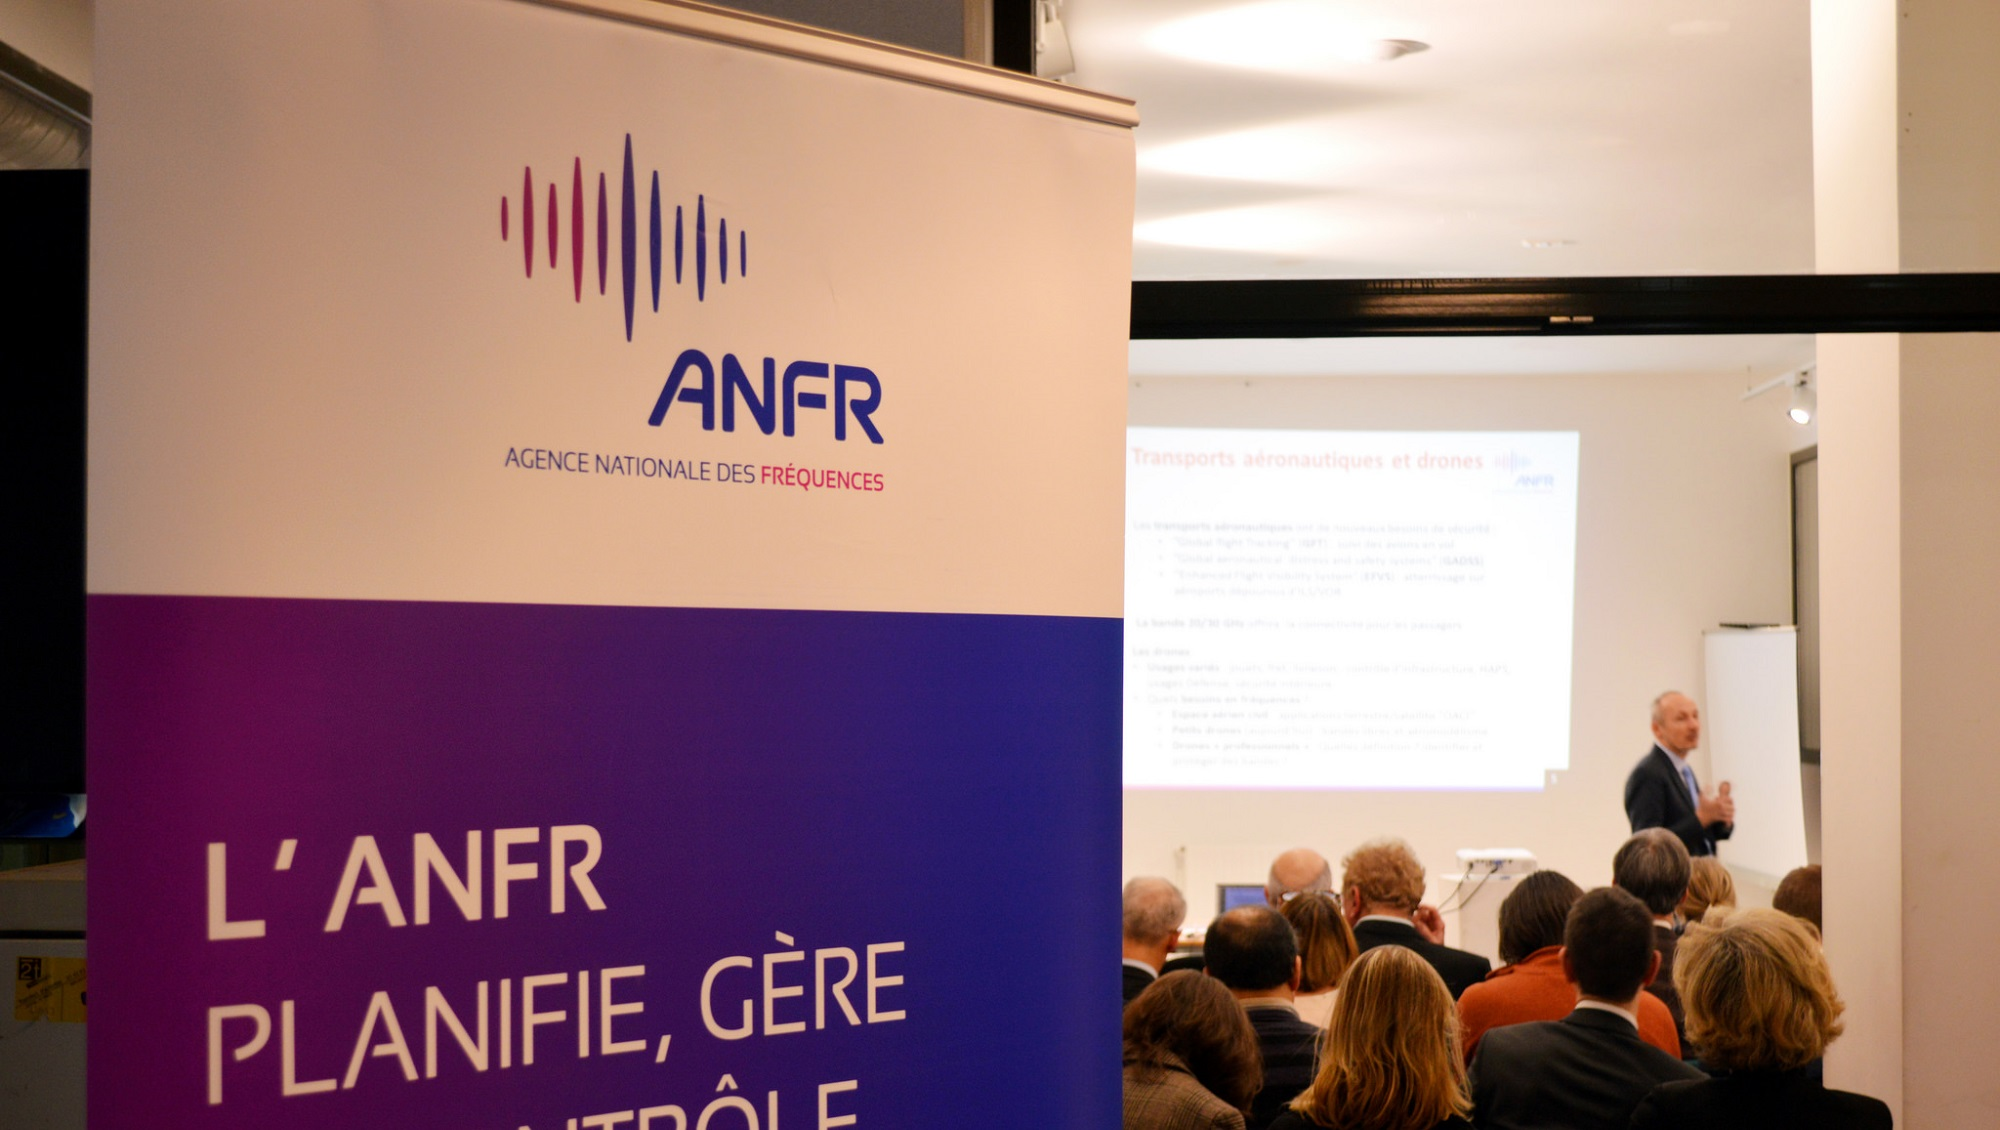 [Press release] ANFR: French Administrative Court refuses Dr Arazi's requests, Smombie Gate | 5G | EMF